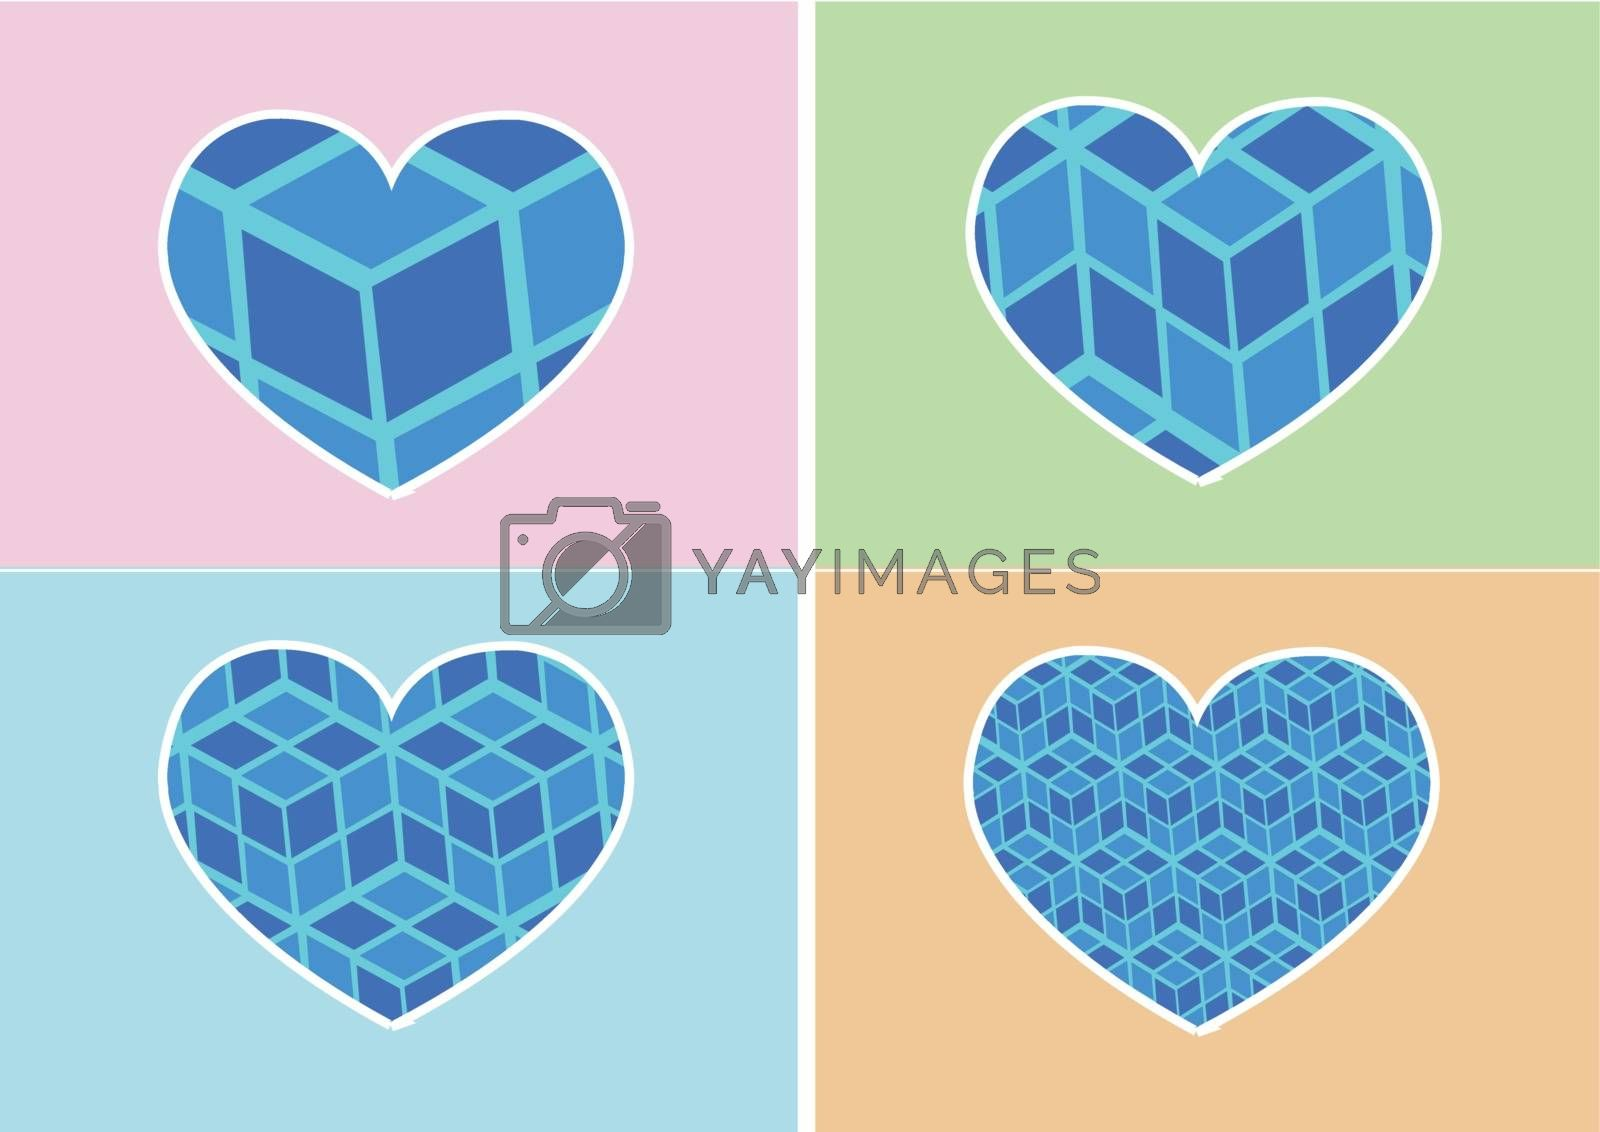 Heart Icon and Hearts symbol lines abstract idea design by kiddaikiddee